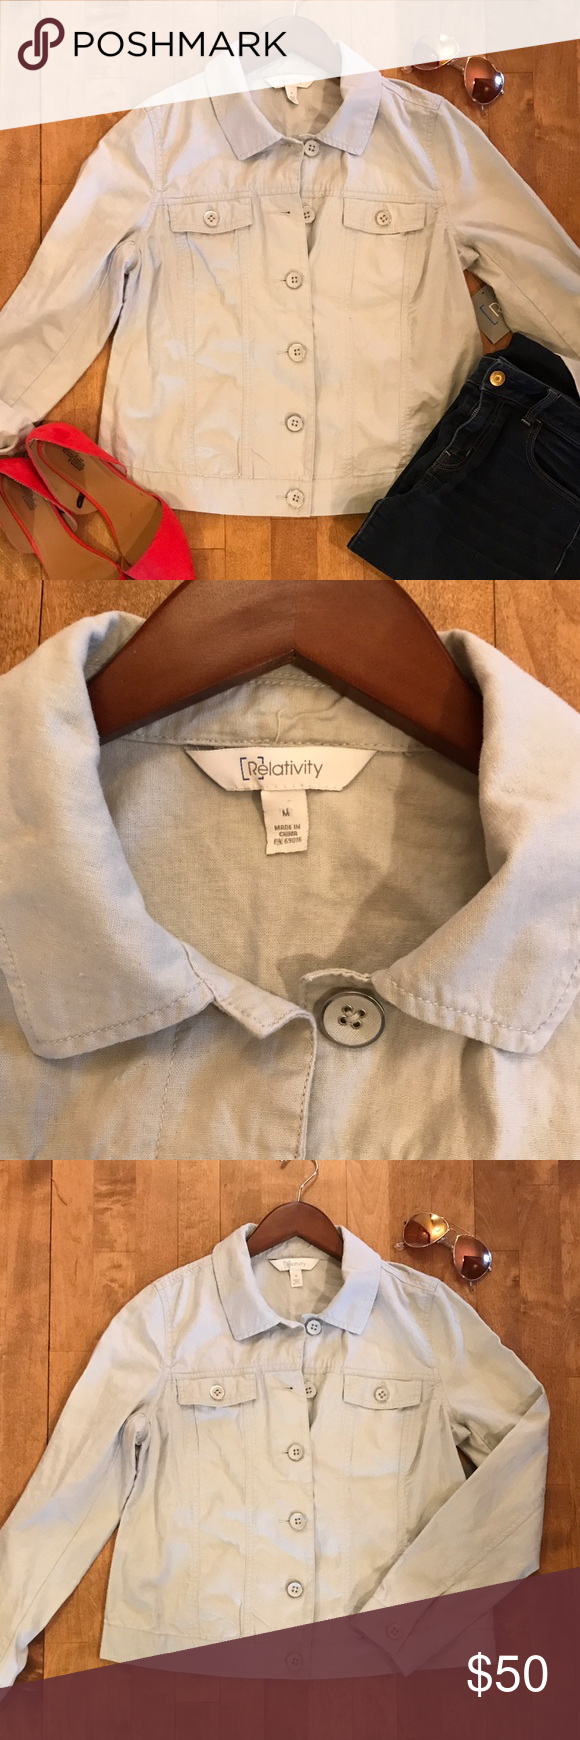 """Linen Jacket Size Medium Cute linen/cotton blend jacket. Lightweight, perfect summer staple. True to fit size medium. Color is """"Iceberg""""...I would describe it as a pale blue/grey. Super cute! No trades, thank you. Relativity Jackets & Coats"""